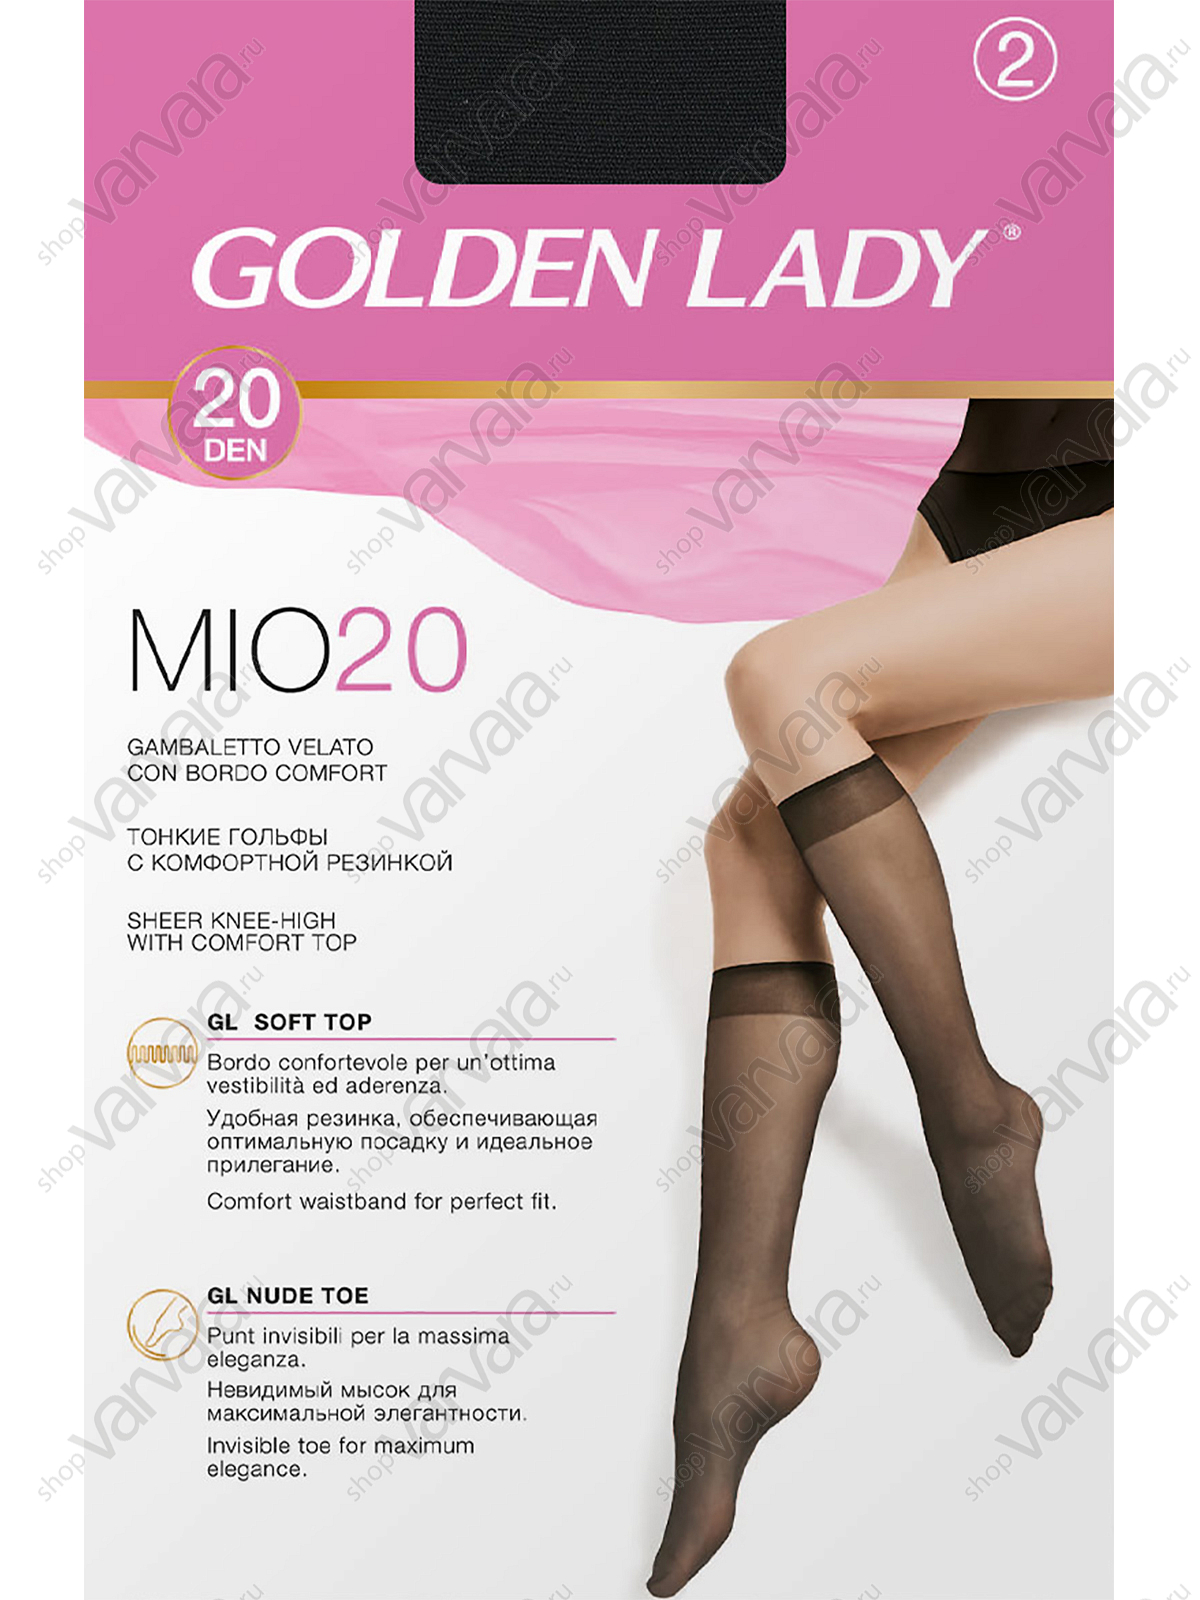 Гольфы Golden Lady Mio 20